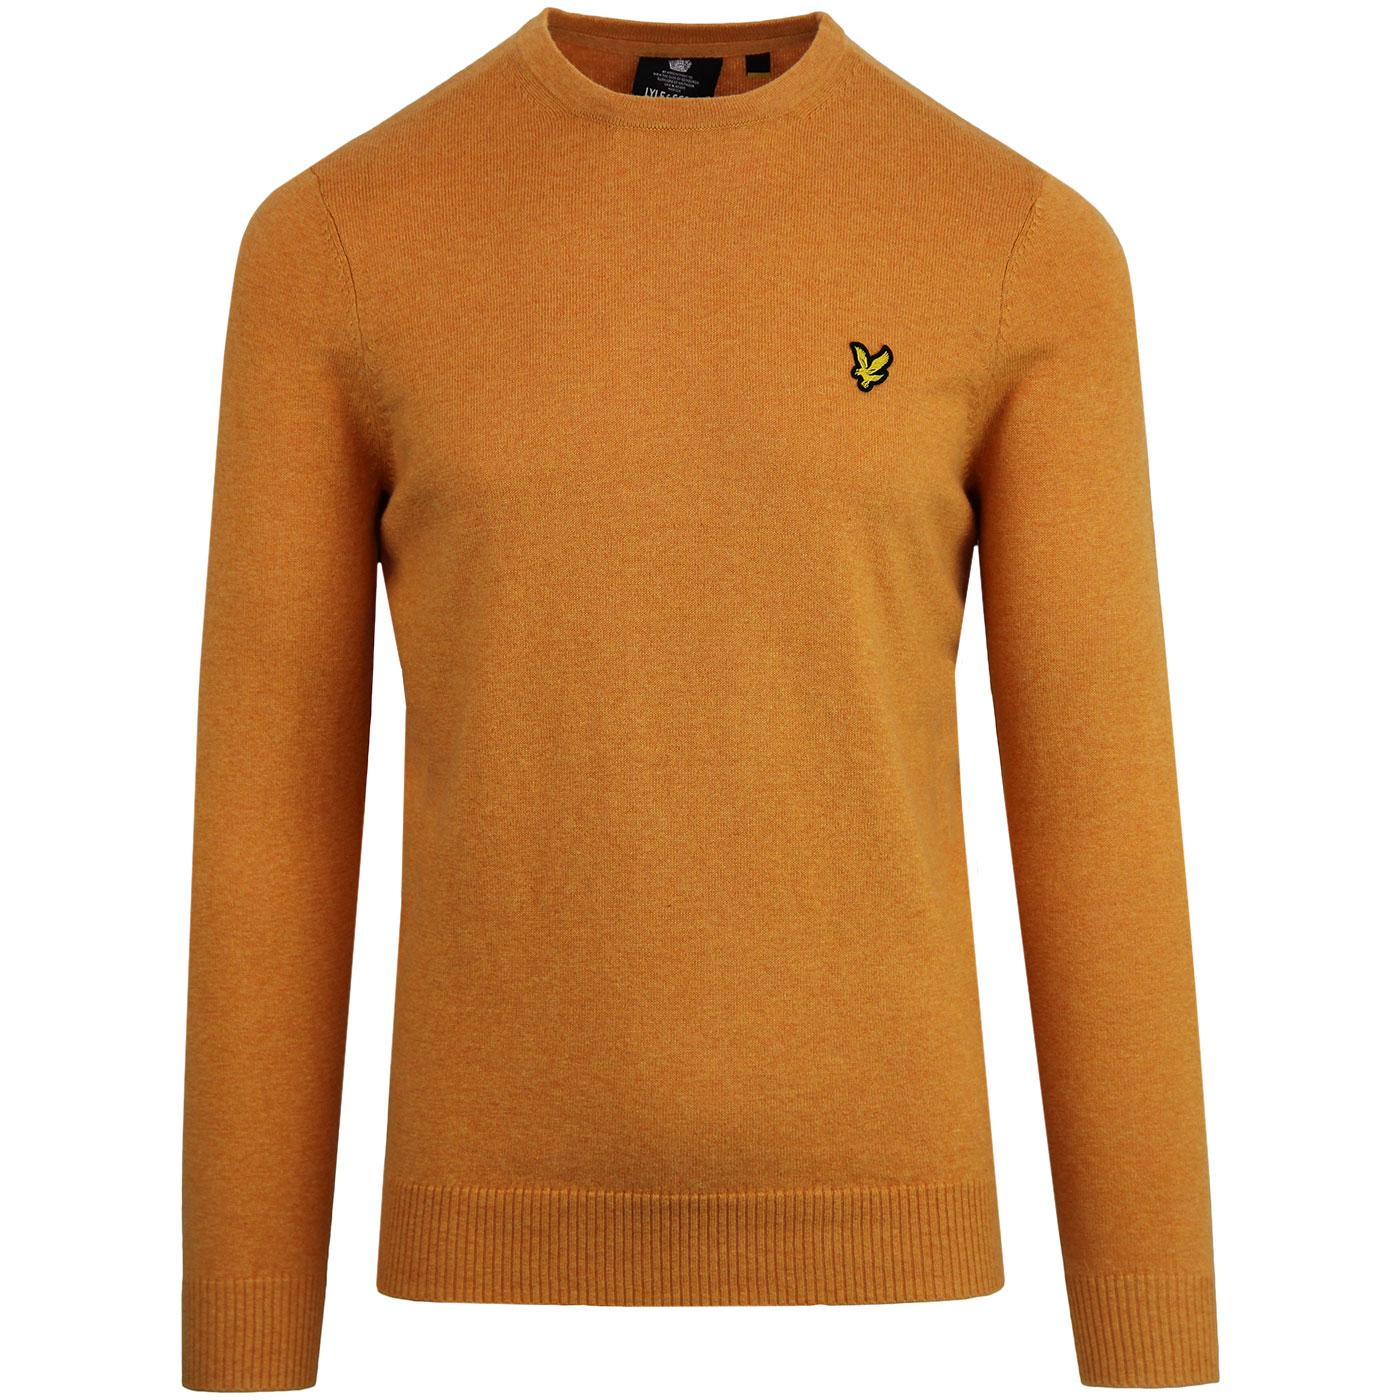 LYLE & SCOTT Mod Cotton Merino Crew Jumper (Honey)